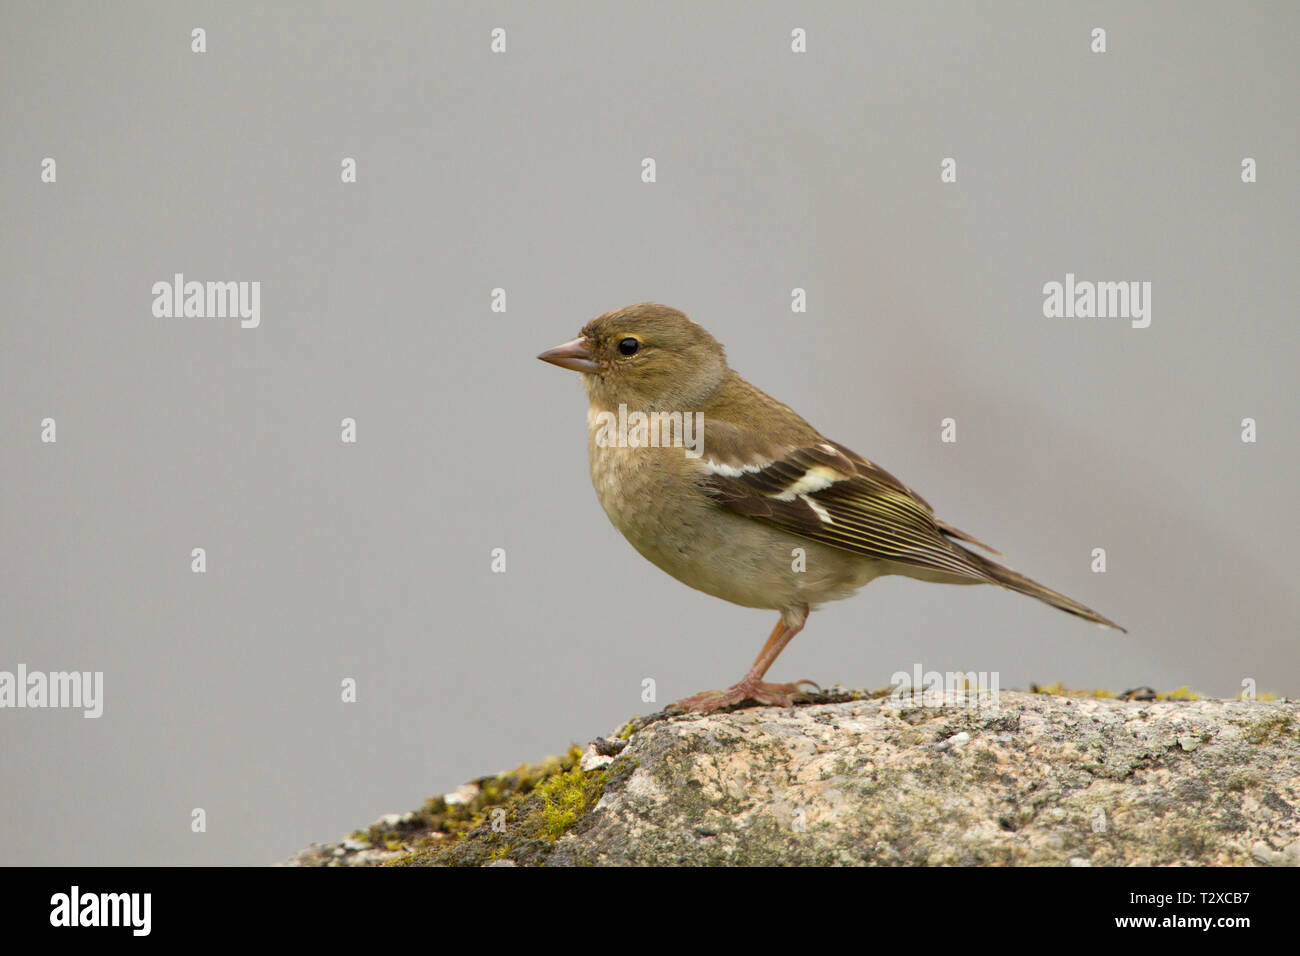 Chaffinch, Fringilla coelebs, single adult female perched on rock. Aviemore, Scotland, UK. - Stock Image